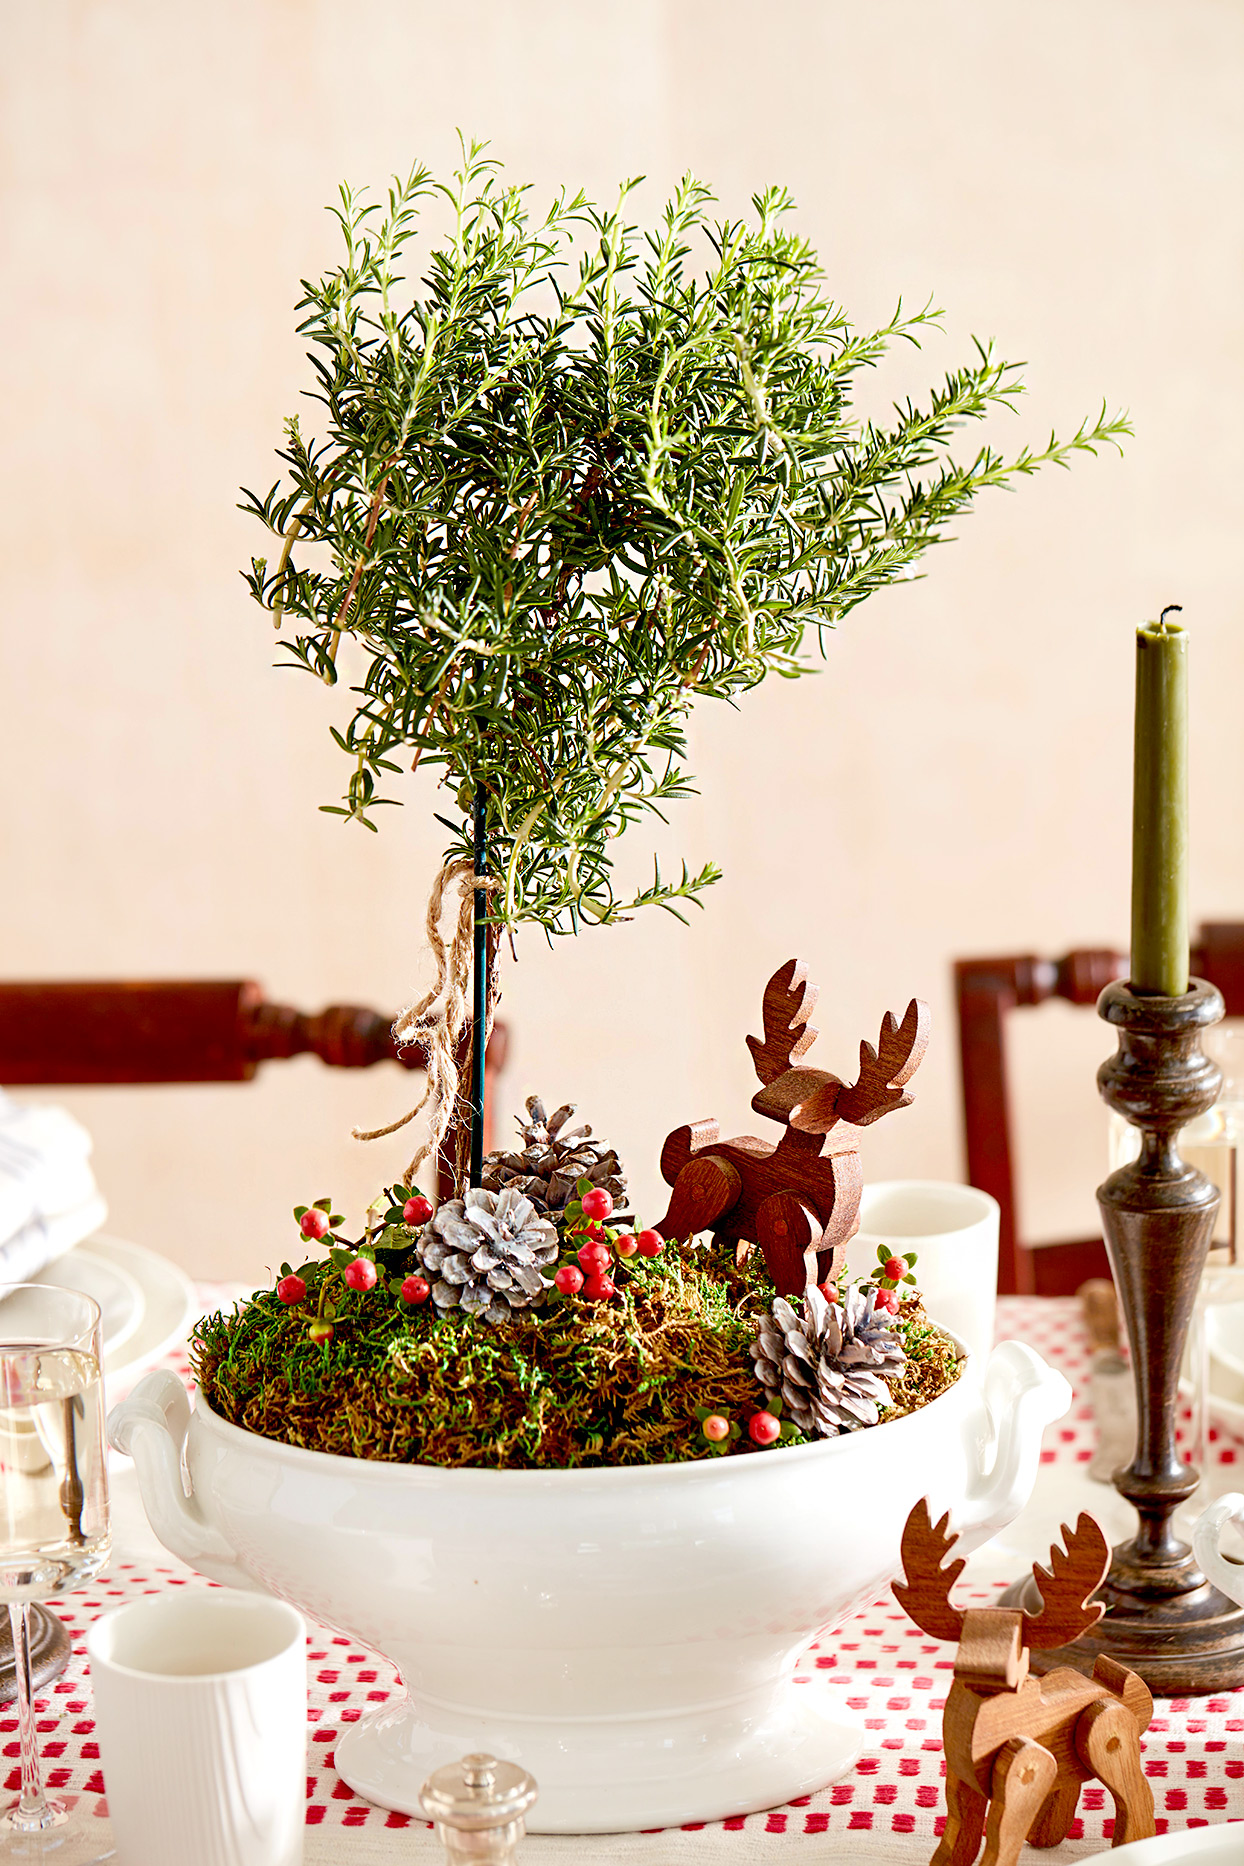 Centerpiece with tree, pinecones, and deer